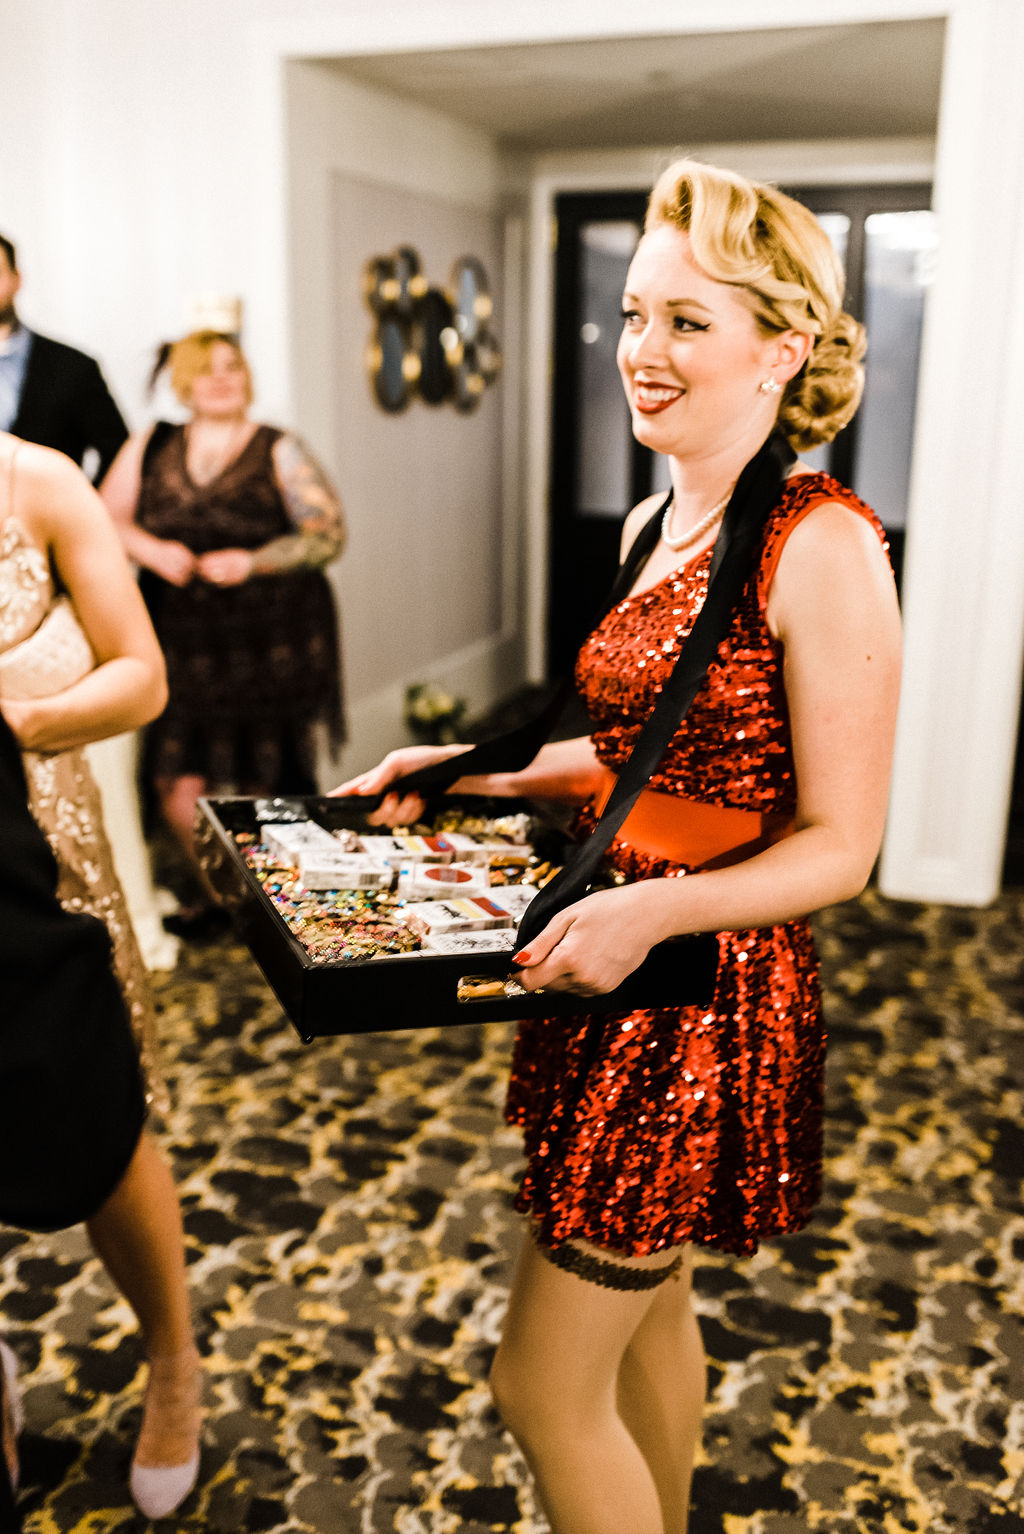 Cigar girls for a great gatsby themed wedding at The Goodwin Hotel in Hartford, CT - Pearl Weddings & Events